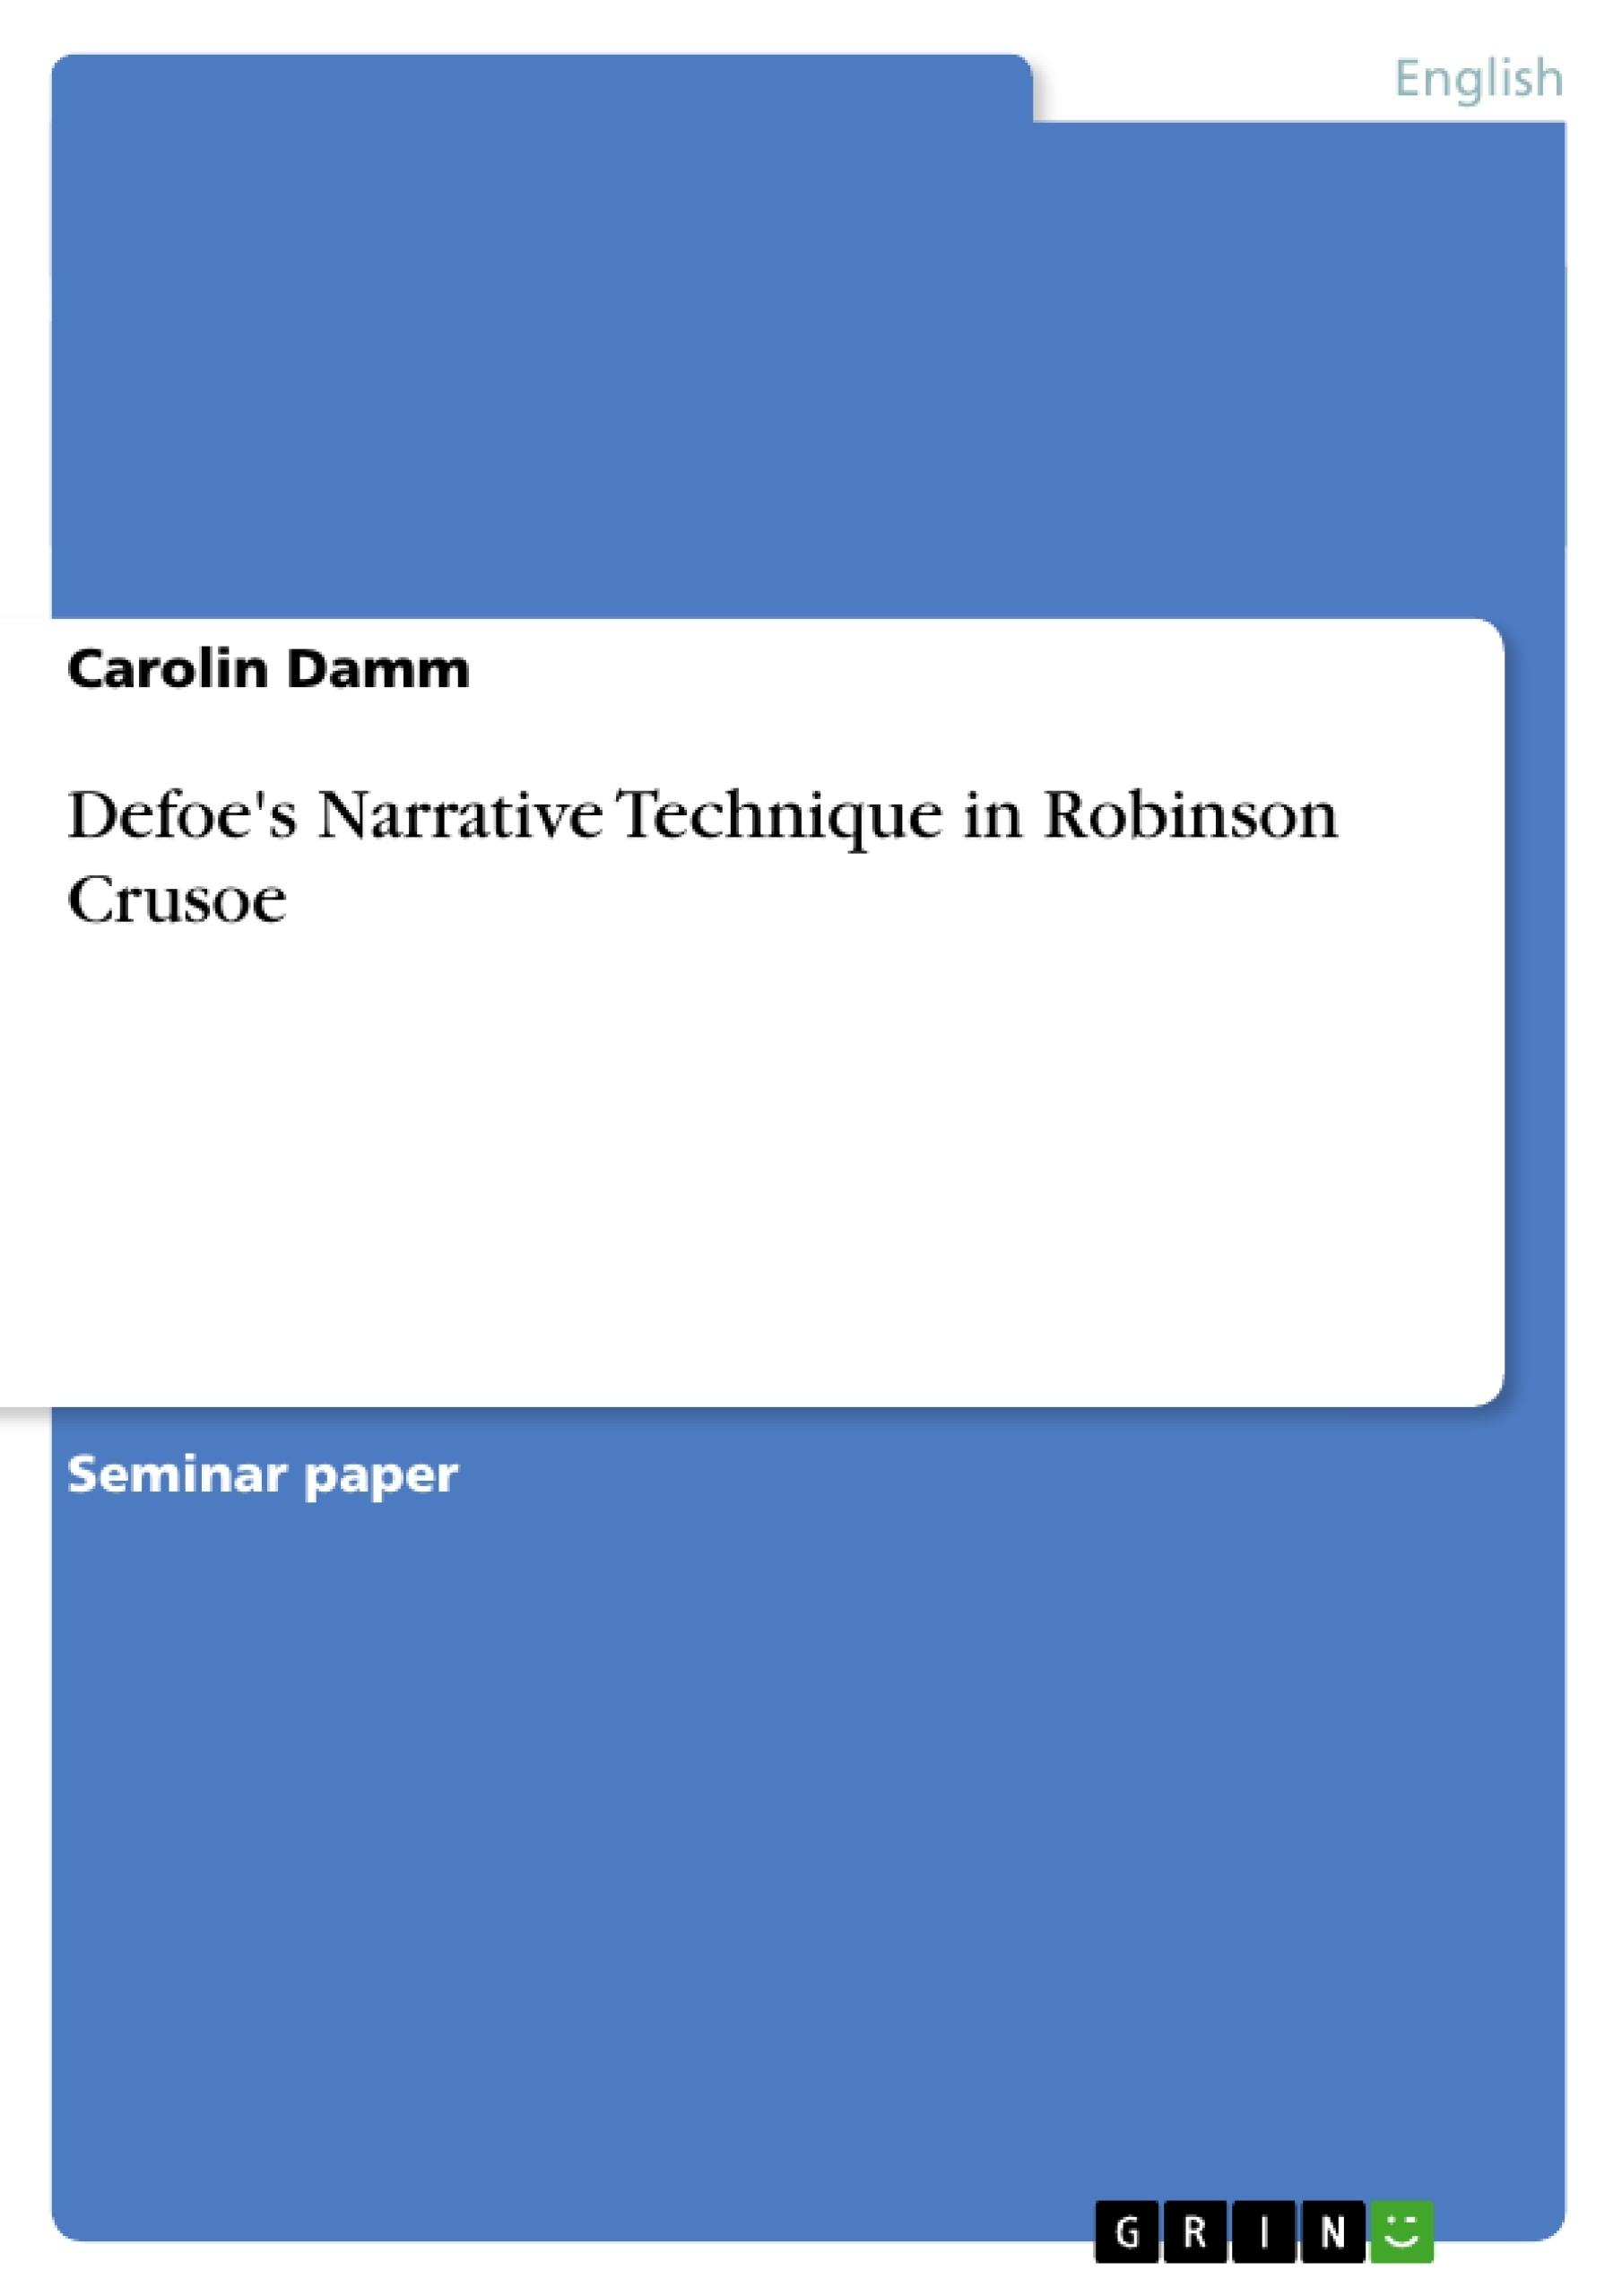 defoe s narrative technique in robinson crusoe publish your  upload your own papers earn money and win an iphone x